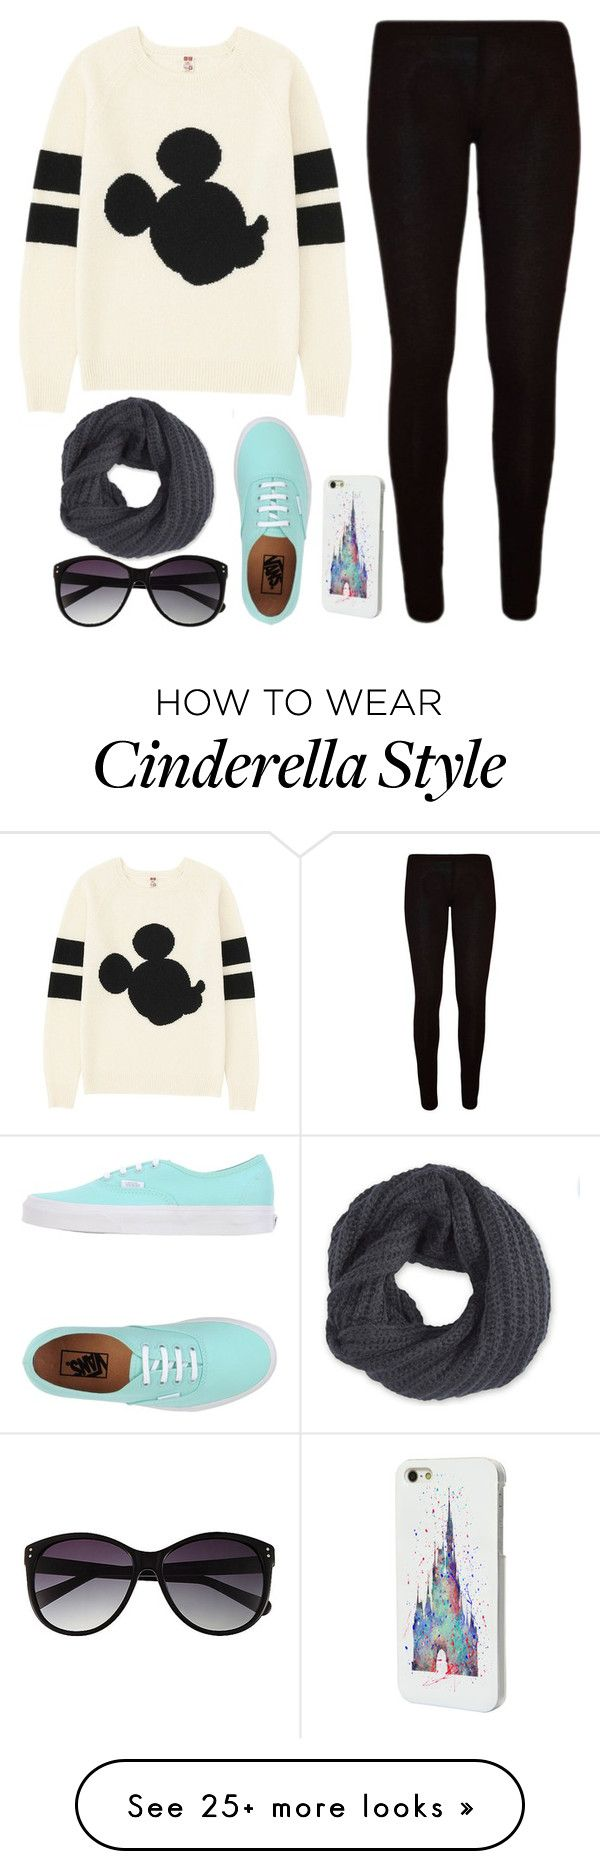 """outfit made for my friend :)"" by bradey-5 on Polyvore featuring Uniqlo, Vans, Disney, Vince Camuto and Frenchi"